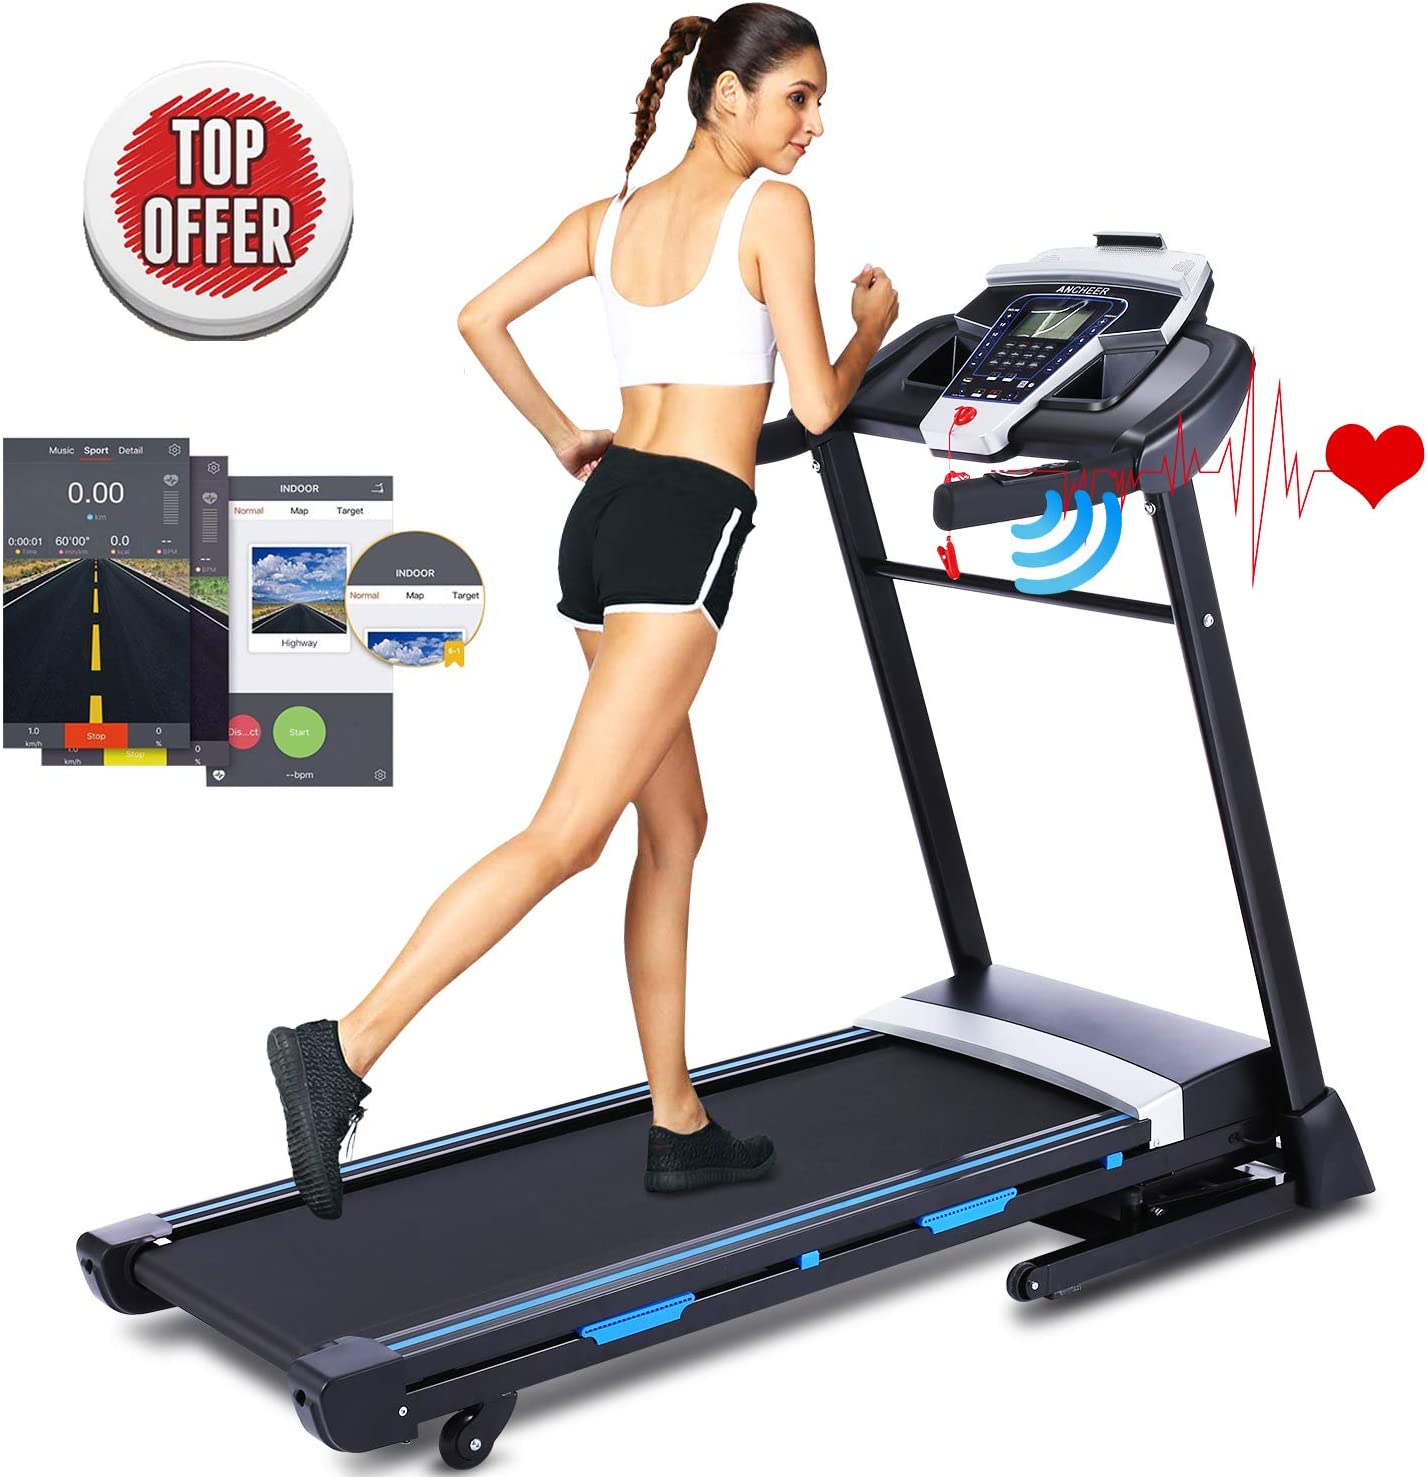 ANCHEER 3.25HP Folding Treadmill, Electric Automatic Incline Treadmill, Fitness Machine Trainer Equipment, Easy Assembly Fitness Motorized Running Jogging Machine with APP Control